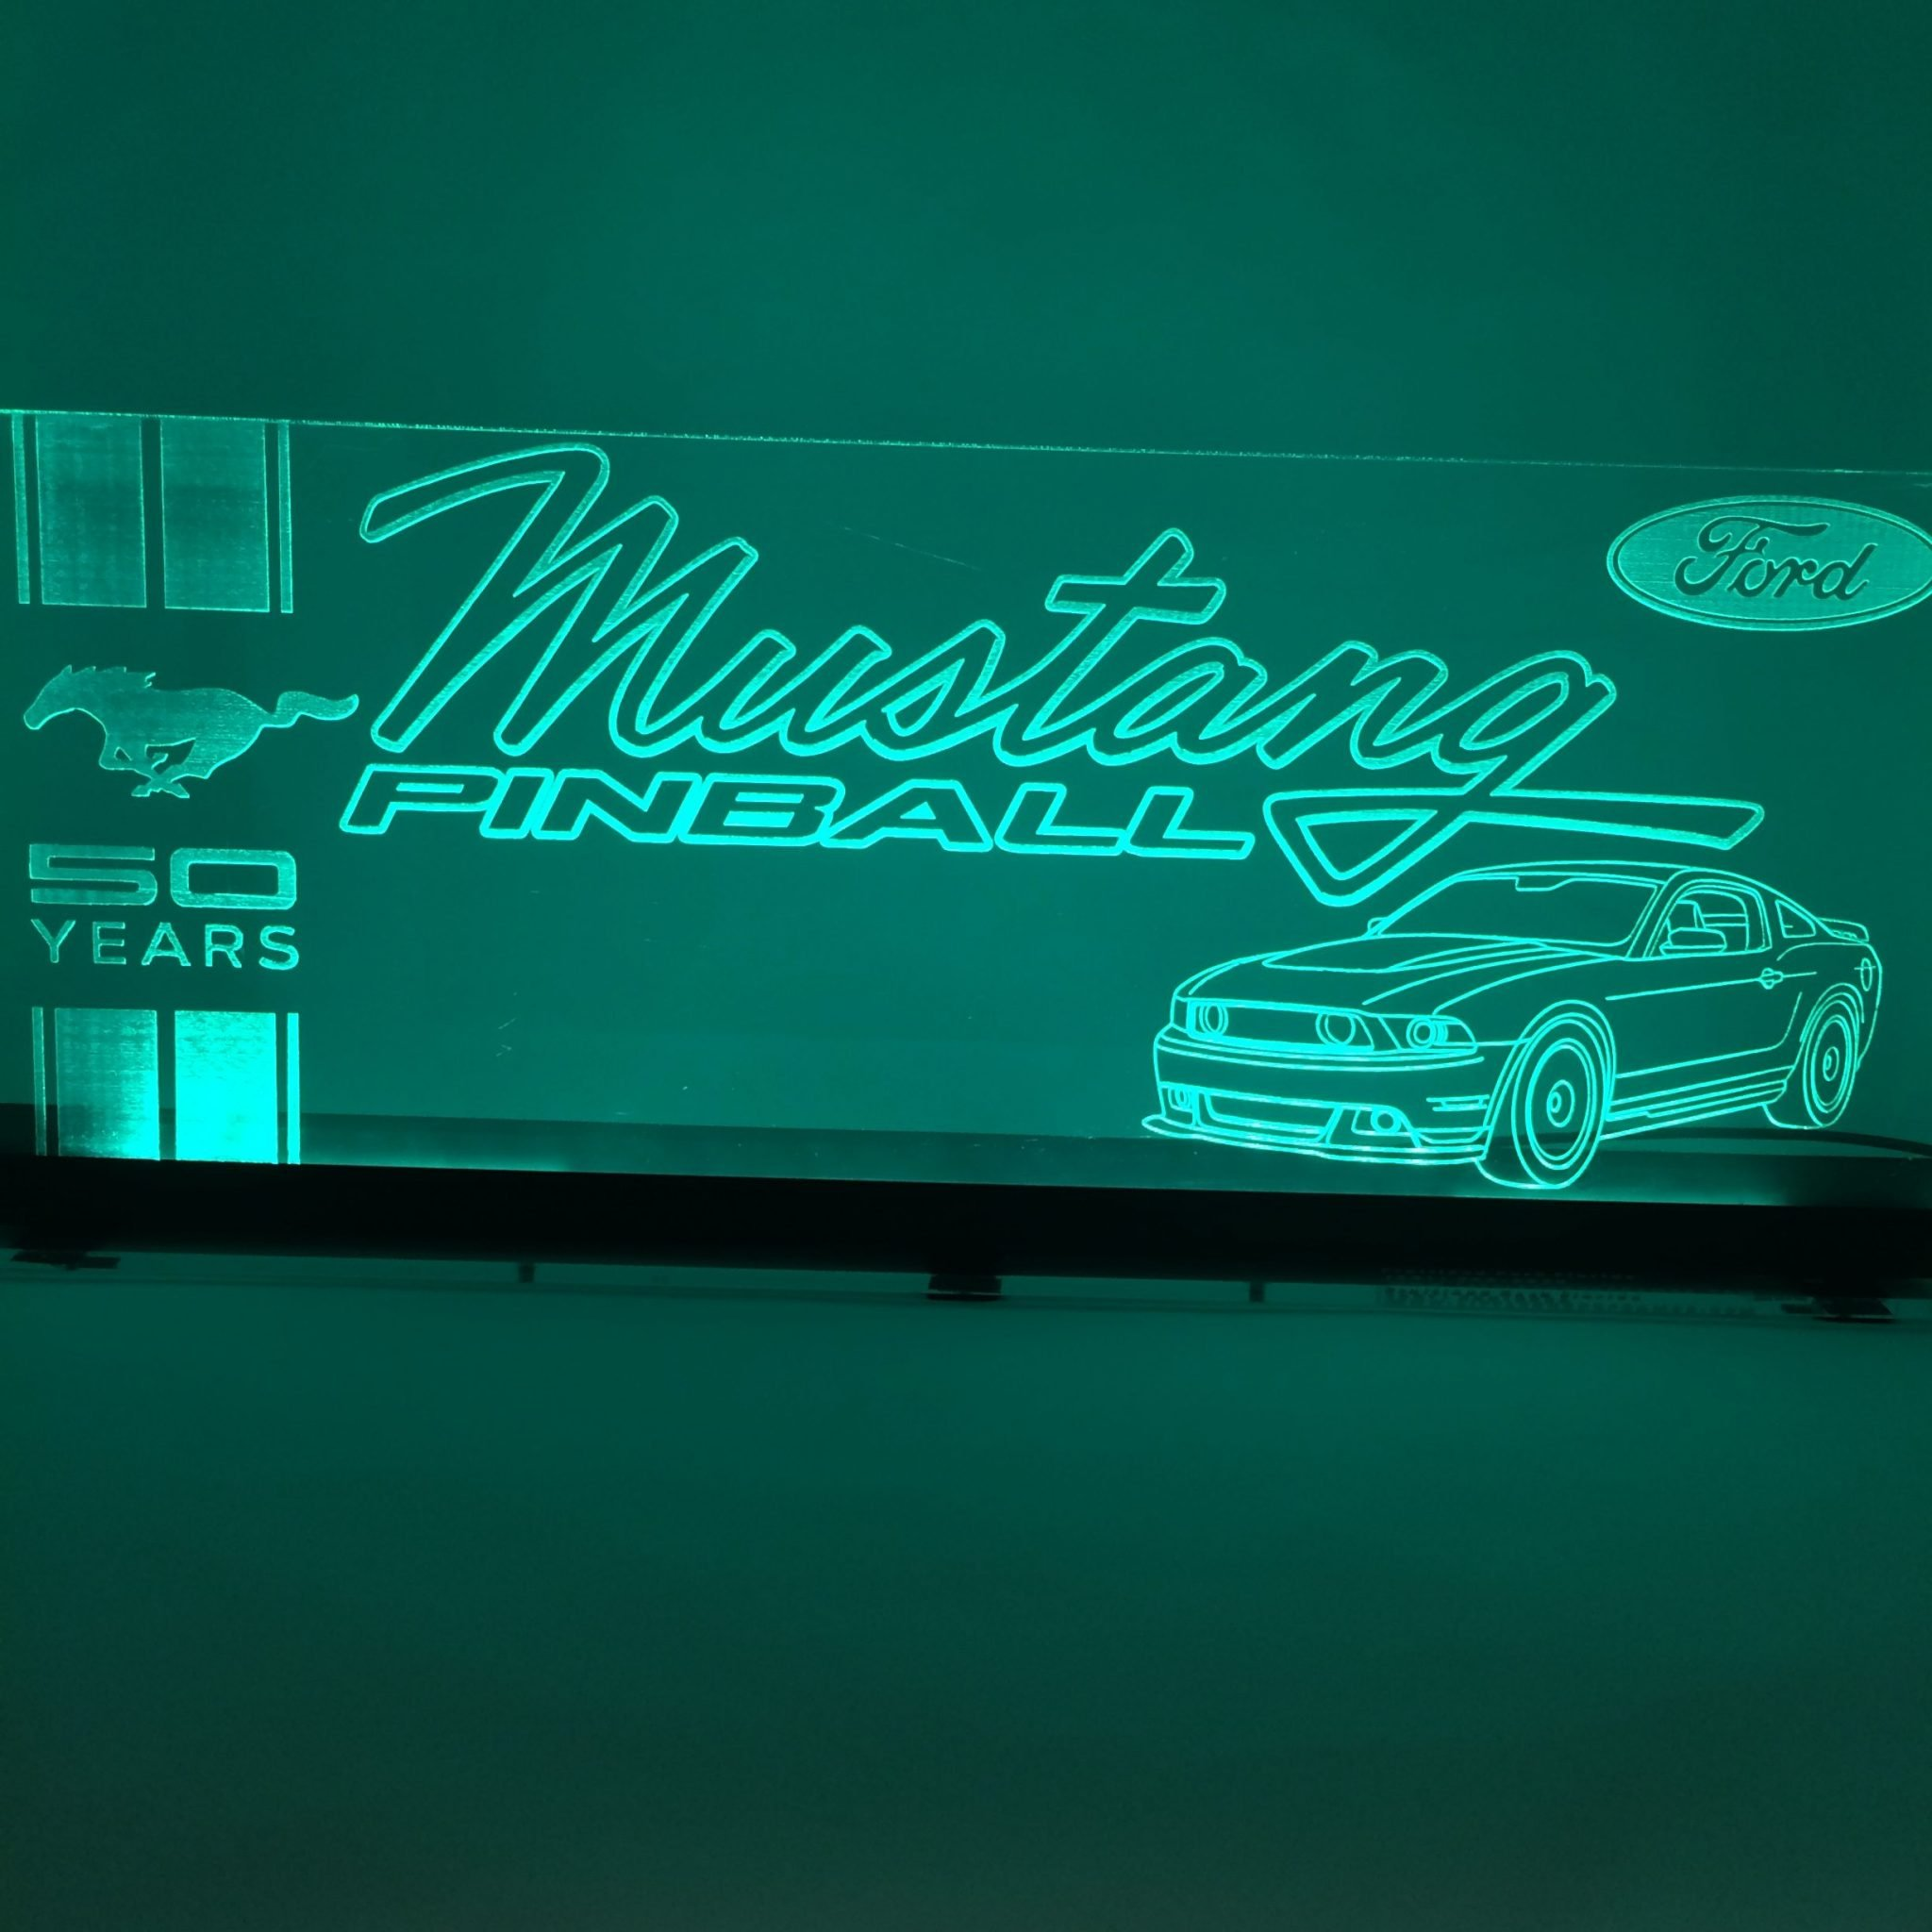 Mustang Acrylic LED Topper for Pinball Machine on